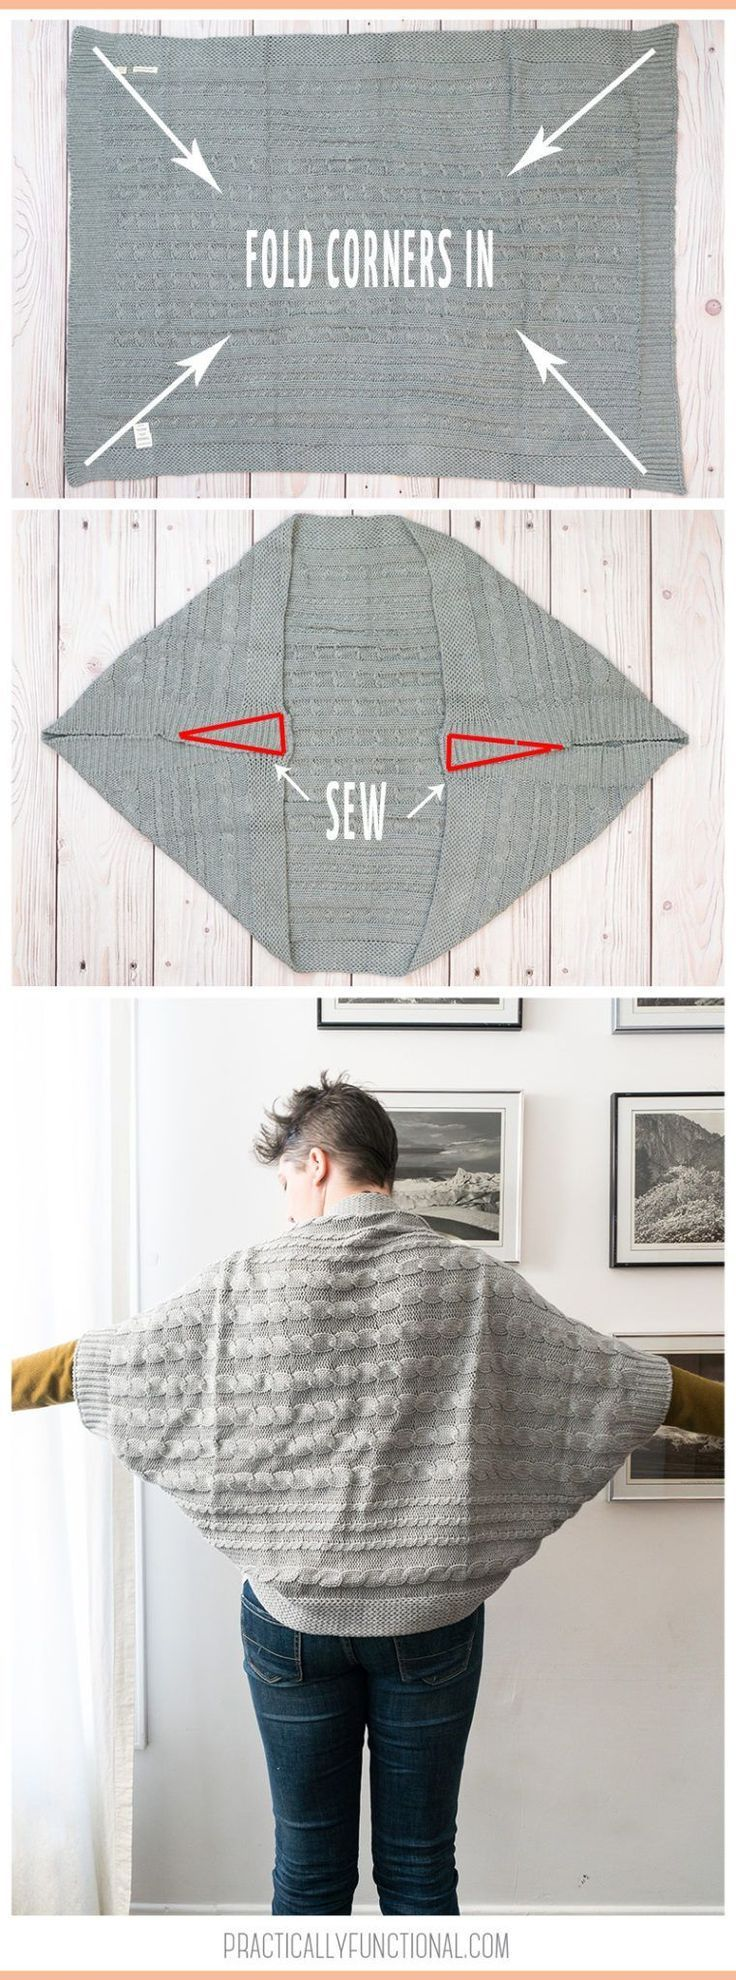 Cozy up this winter in a blanket turned DIY cocoon cardigan! This DIY is easy and takes just minutes - make it with your favorite blanket! #cocooncardigan #simplesewing